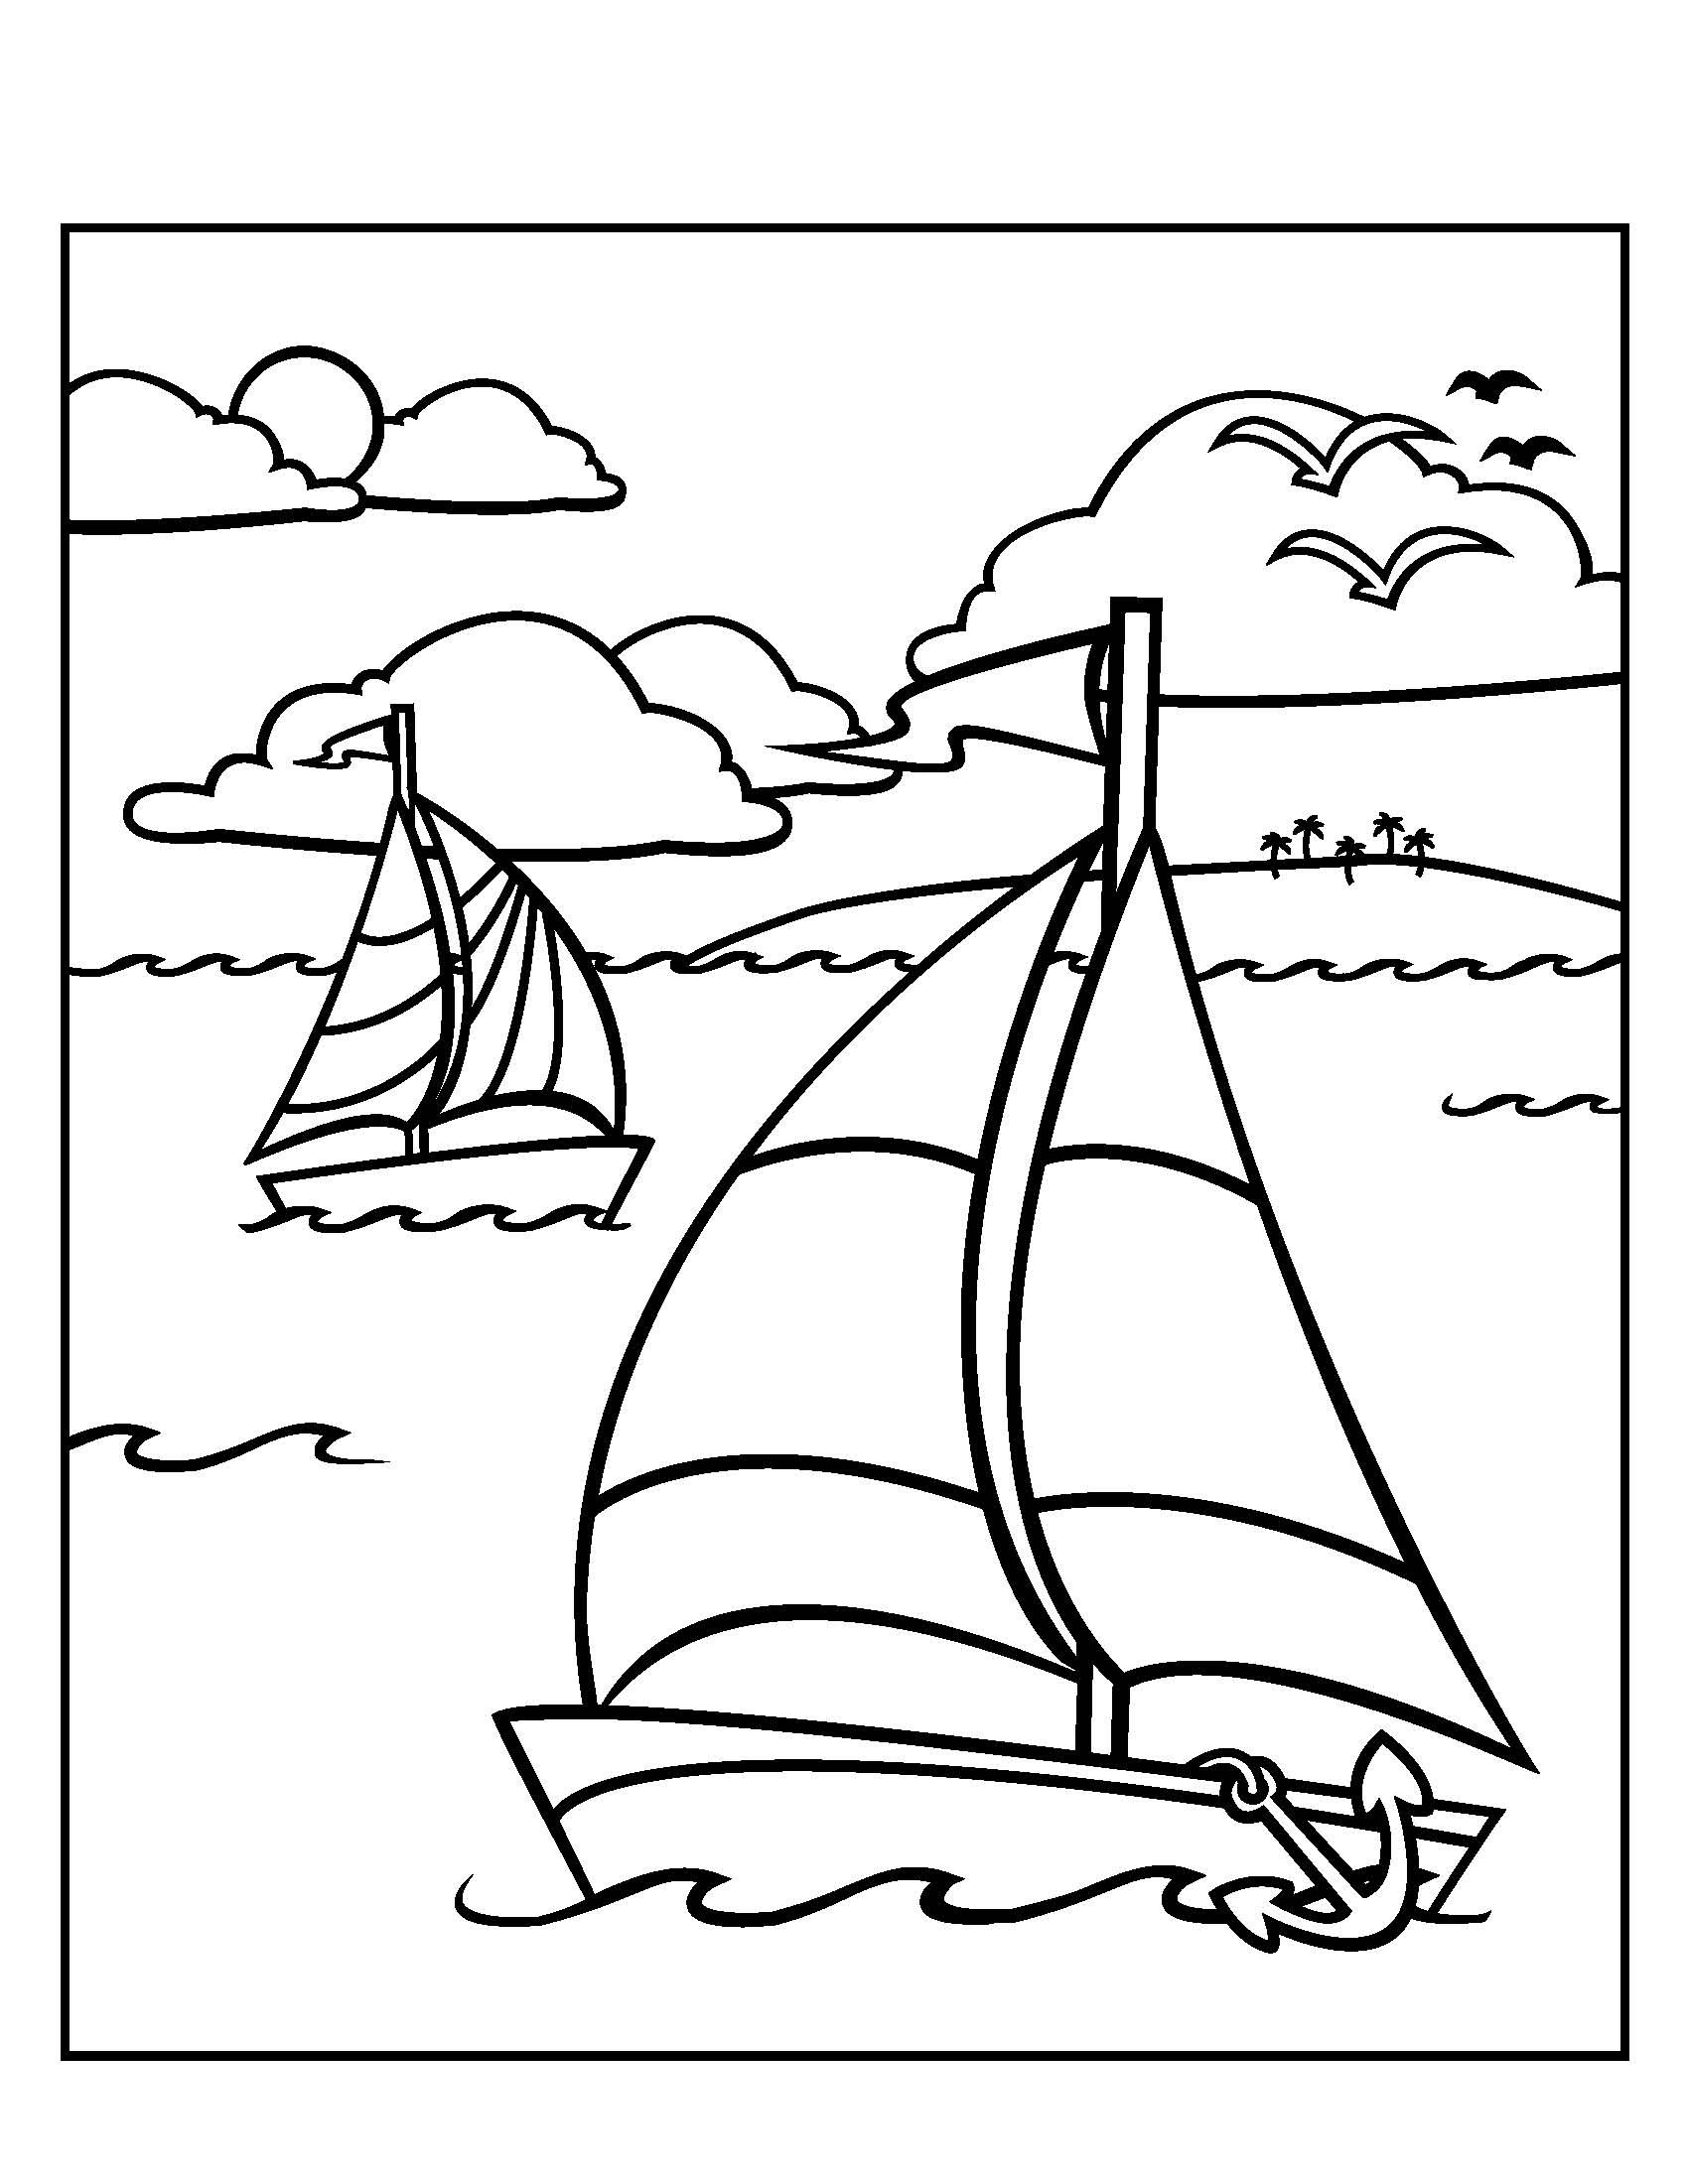 elementary school coloring pages elementary school coloring pages free coloring sheets pages coloring elementary school